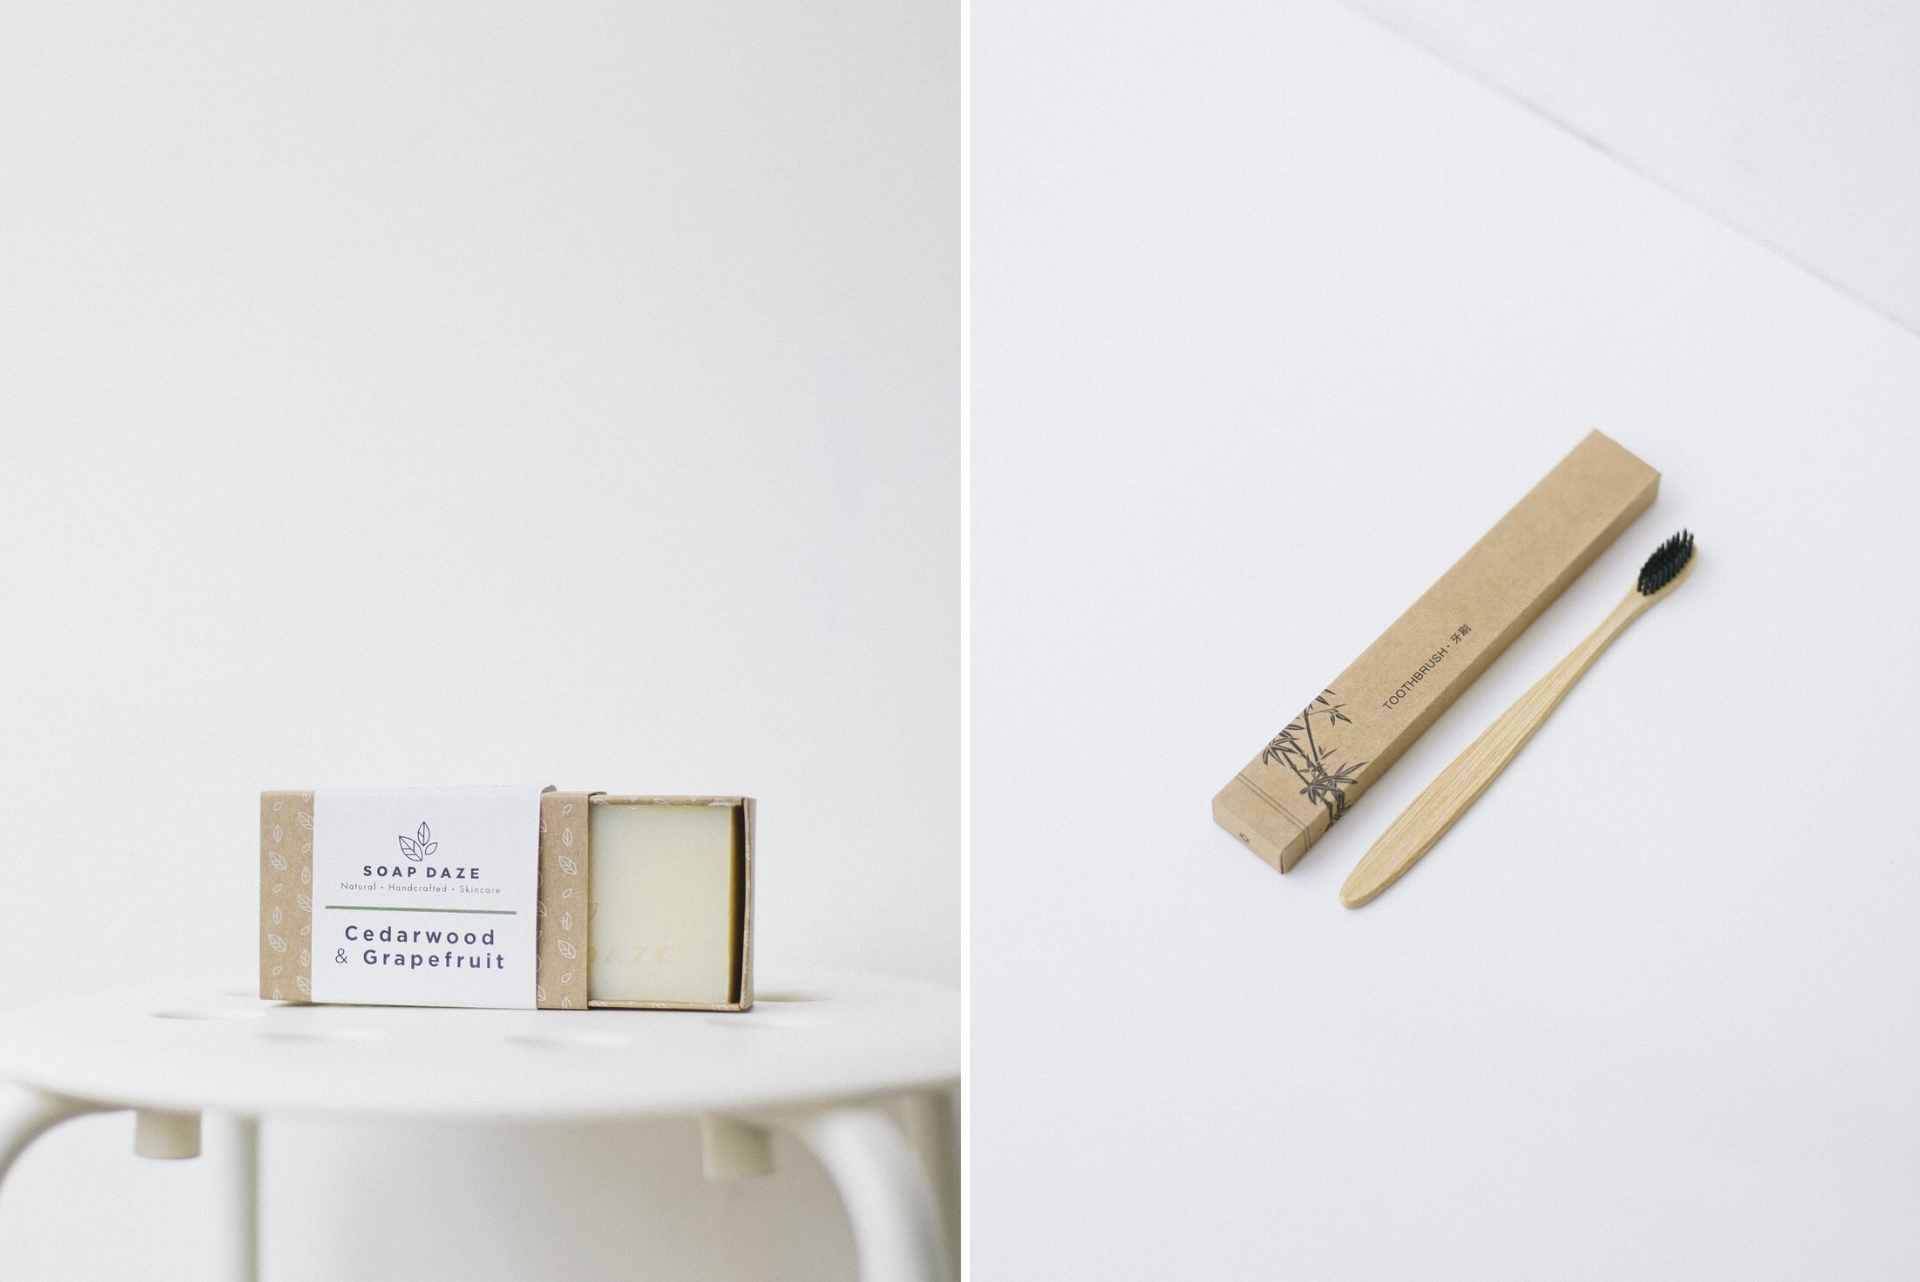 soap-daze-soap-and-bamboo-toothbrush